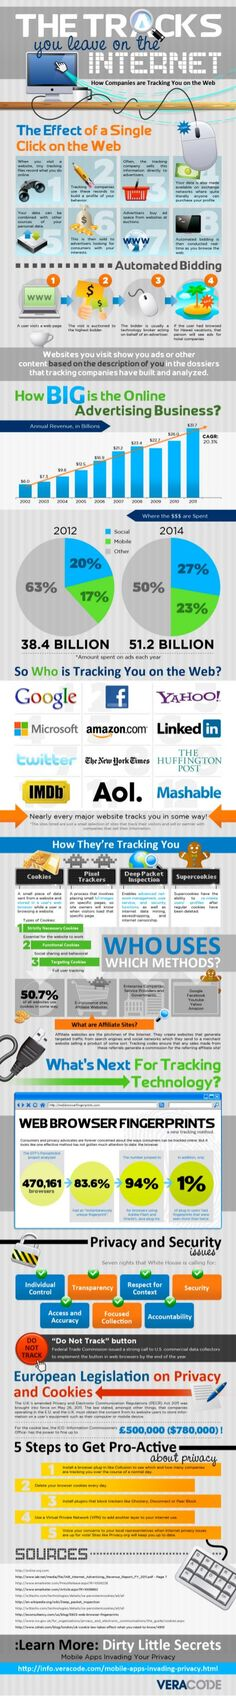 Ever feel like you're being watched online? Well, you are, according to a new infographic that looks at how companies track internet users online and what they do with that information. Internet Tracking, Internet Safety, Sem Internet, Tracking Software, Business Marketing, Internet Marketing, Online Marketing, Social Media Marketing, Business Infographics